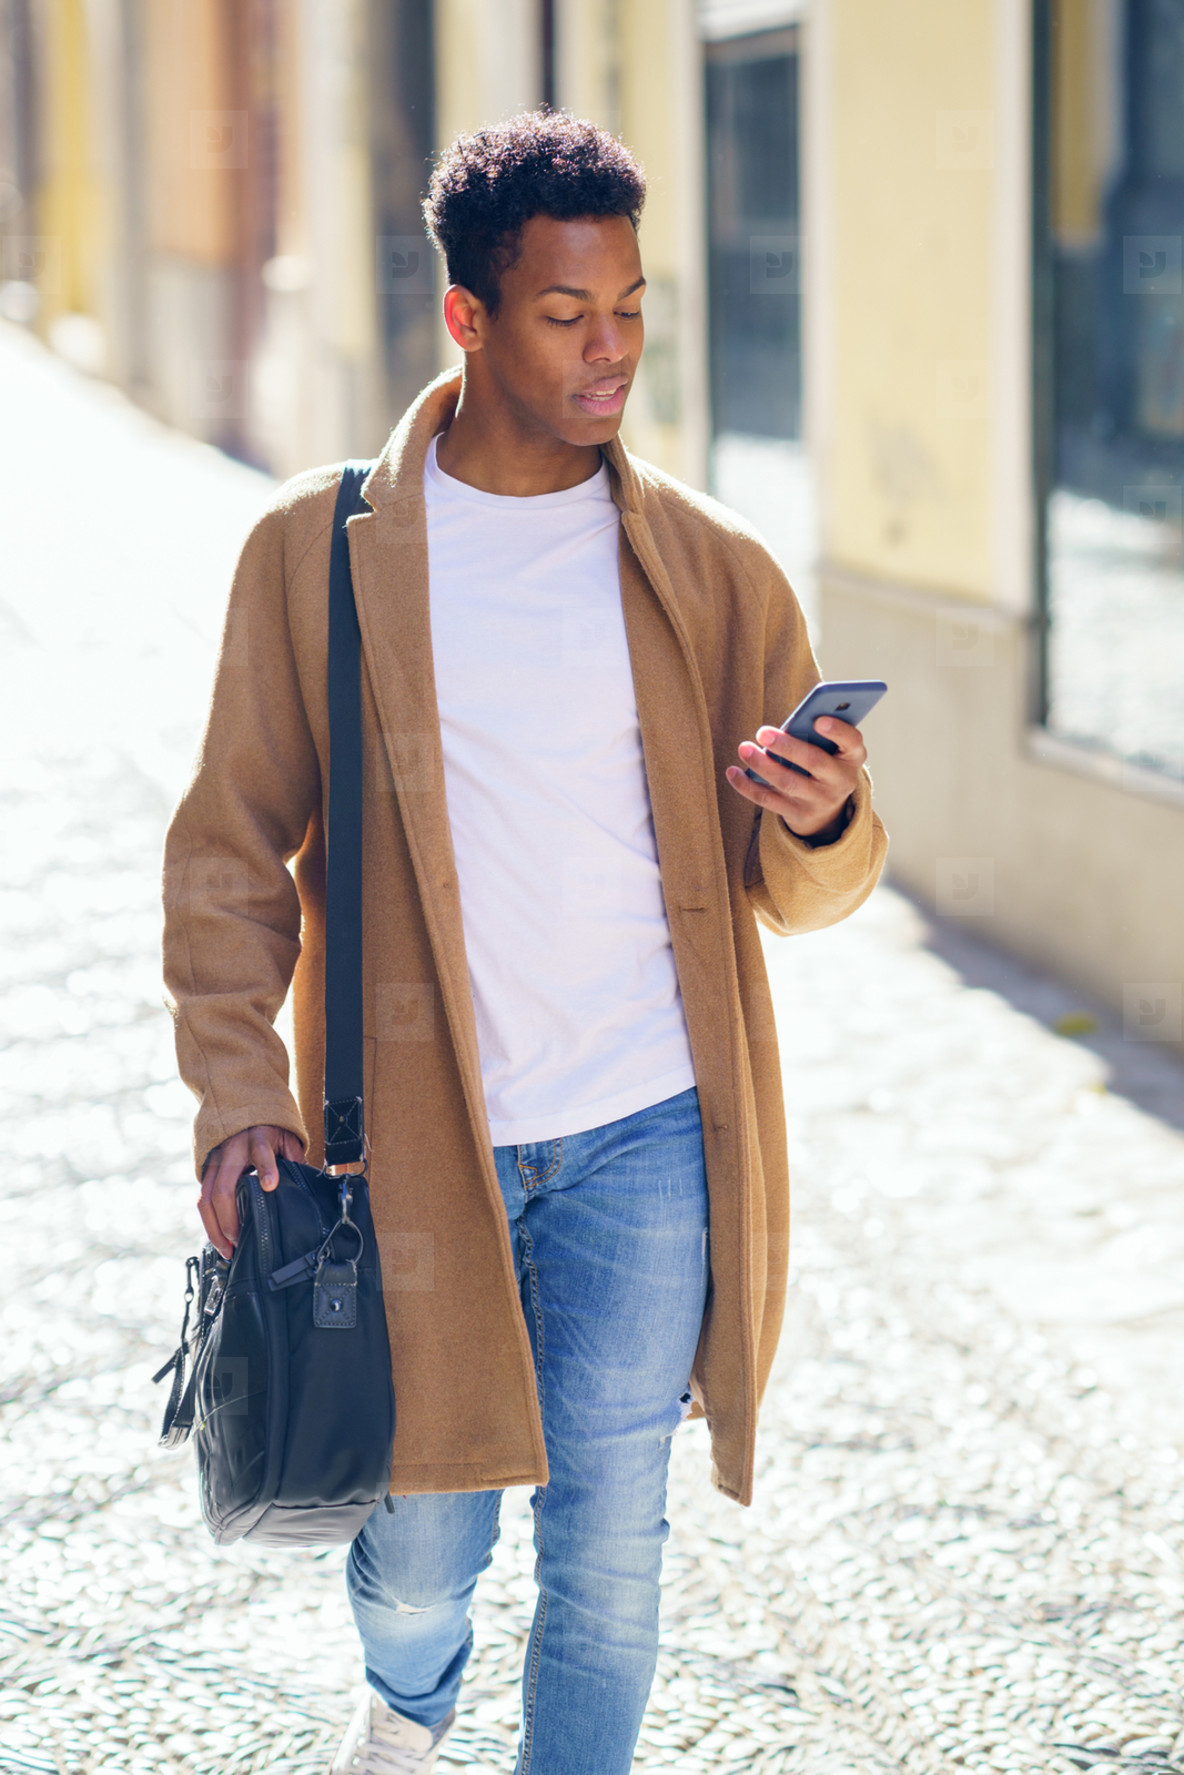 Young black man walking down the street carrying a briefcase and a smartphone